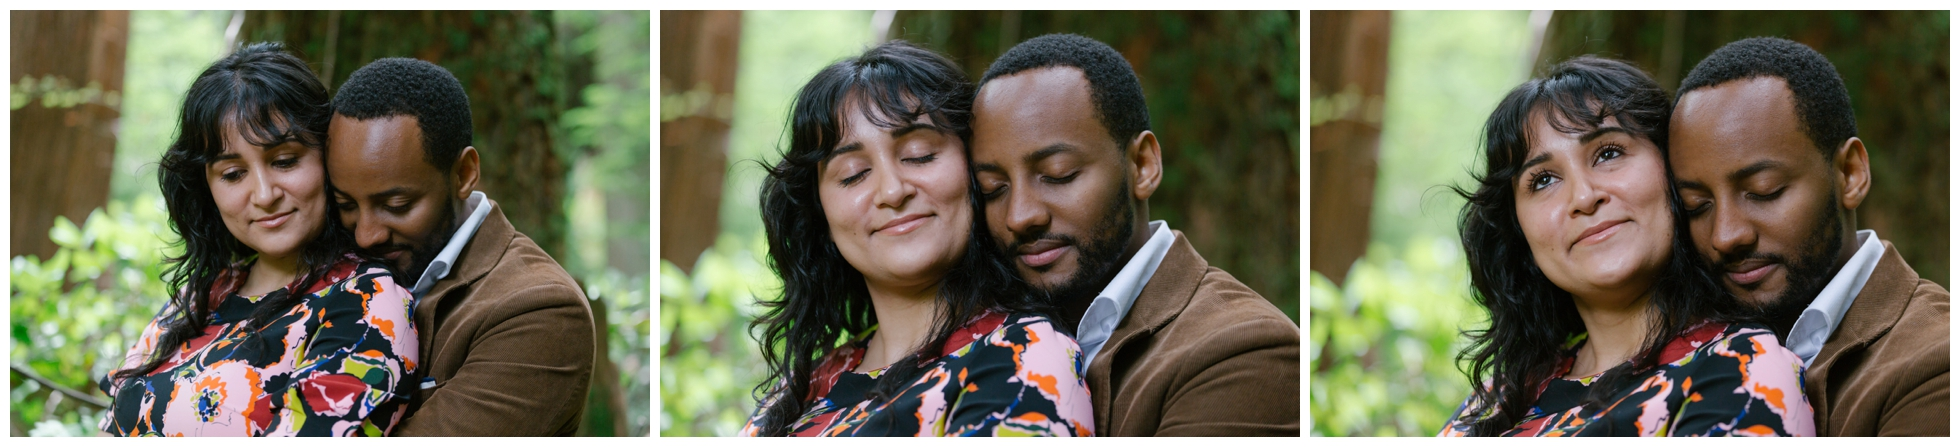 Tara and Petros Engagement Session (Life by Selena Photography)_0053.jpg